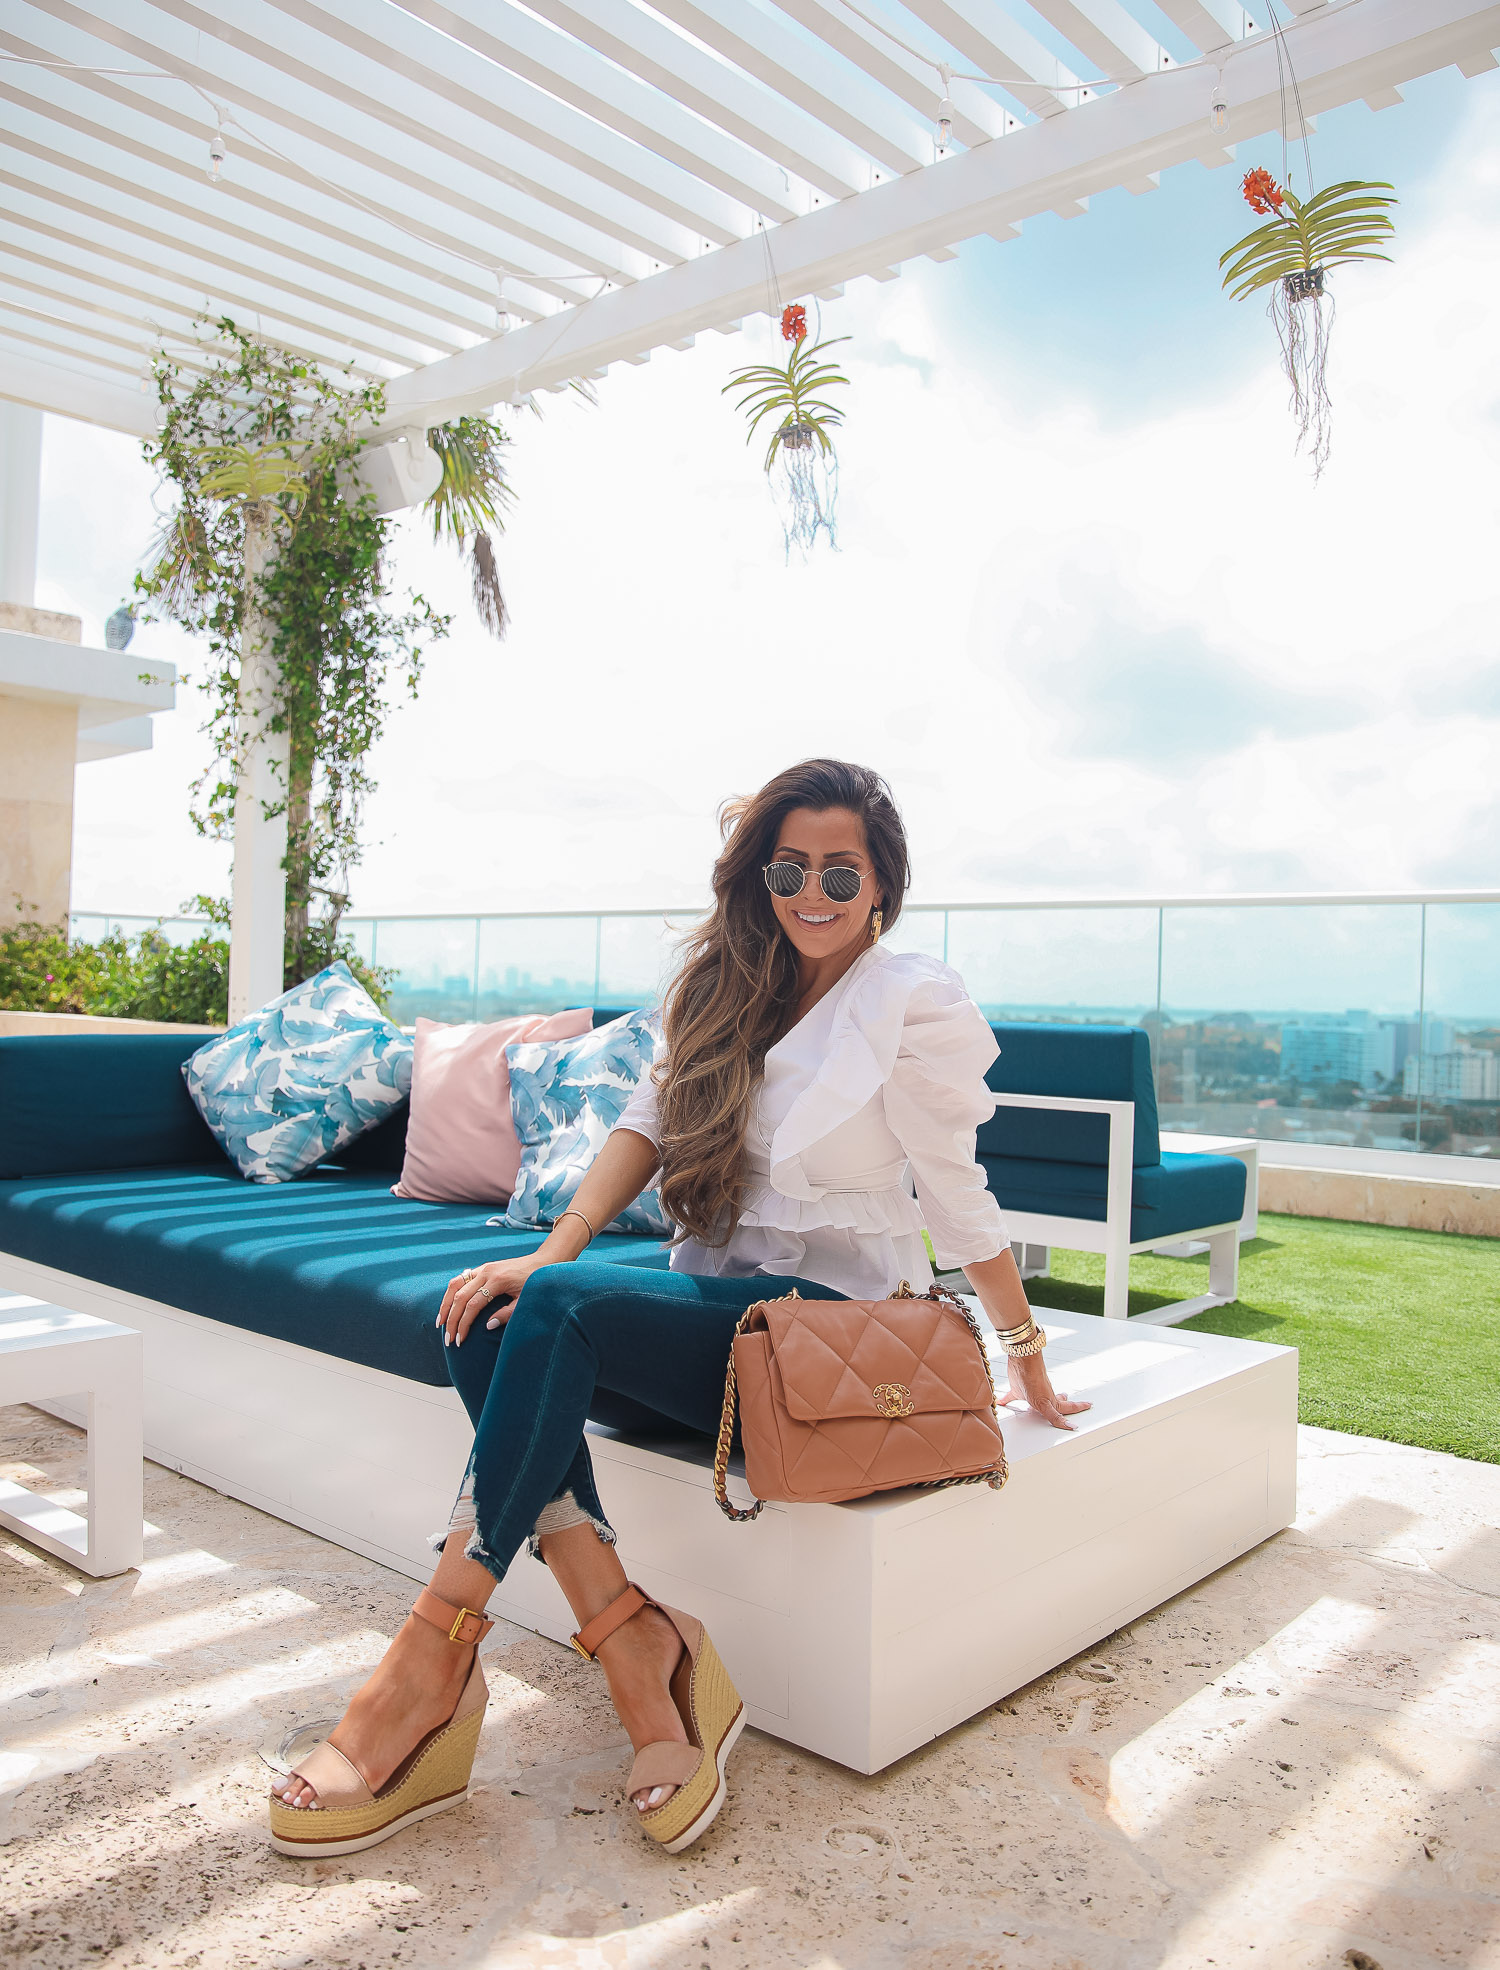 EXPRESS spring fashion, good american jean dupes, chanel 19 medium tan carmel color, emily gemma, the grand miami surfside |Instagram Recap by popular US fashion blog, The Sweetest Thing: image of Emily Gemma sitting outside and wearing a white Express top, Express jeans, and tan strap espadrilles.